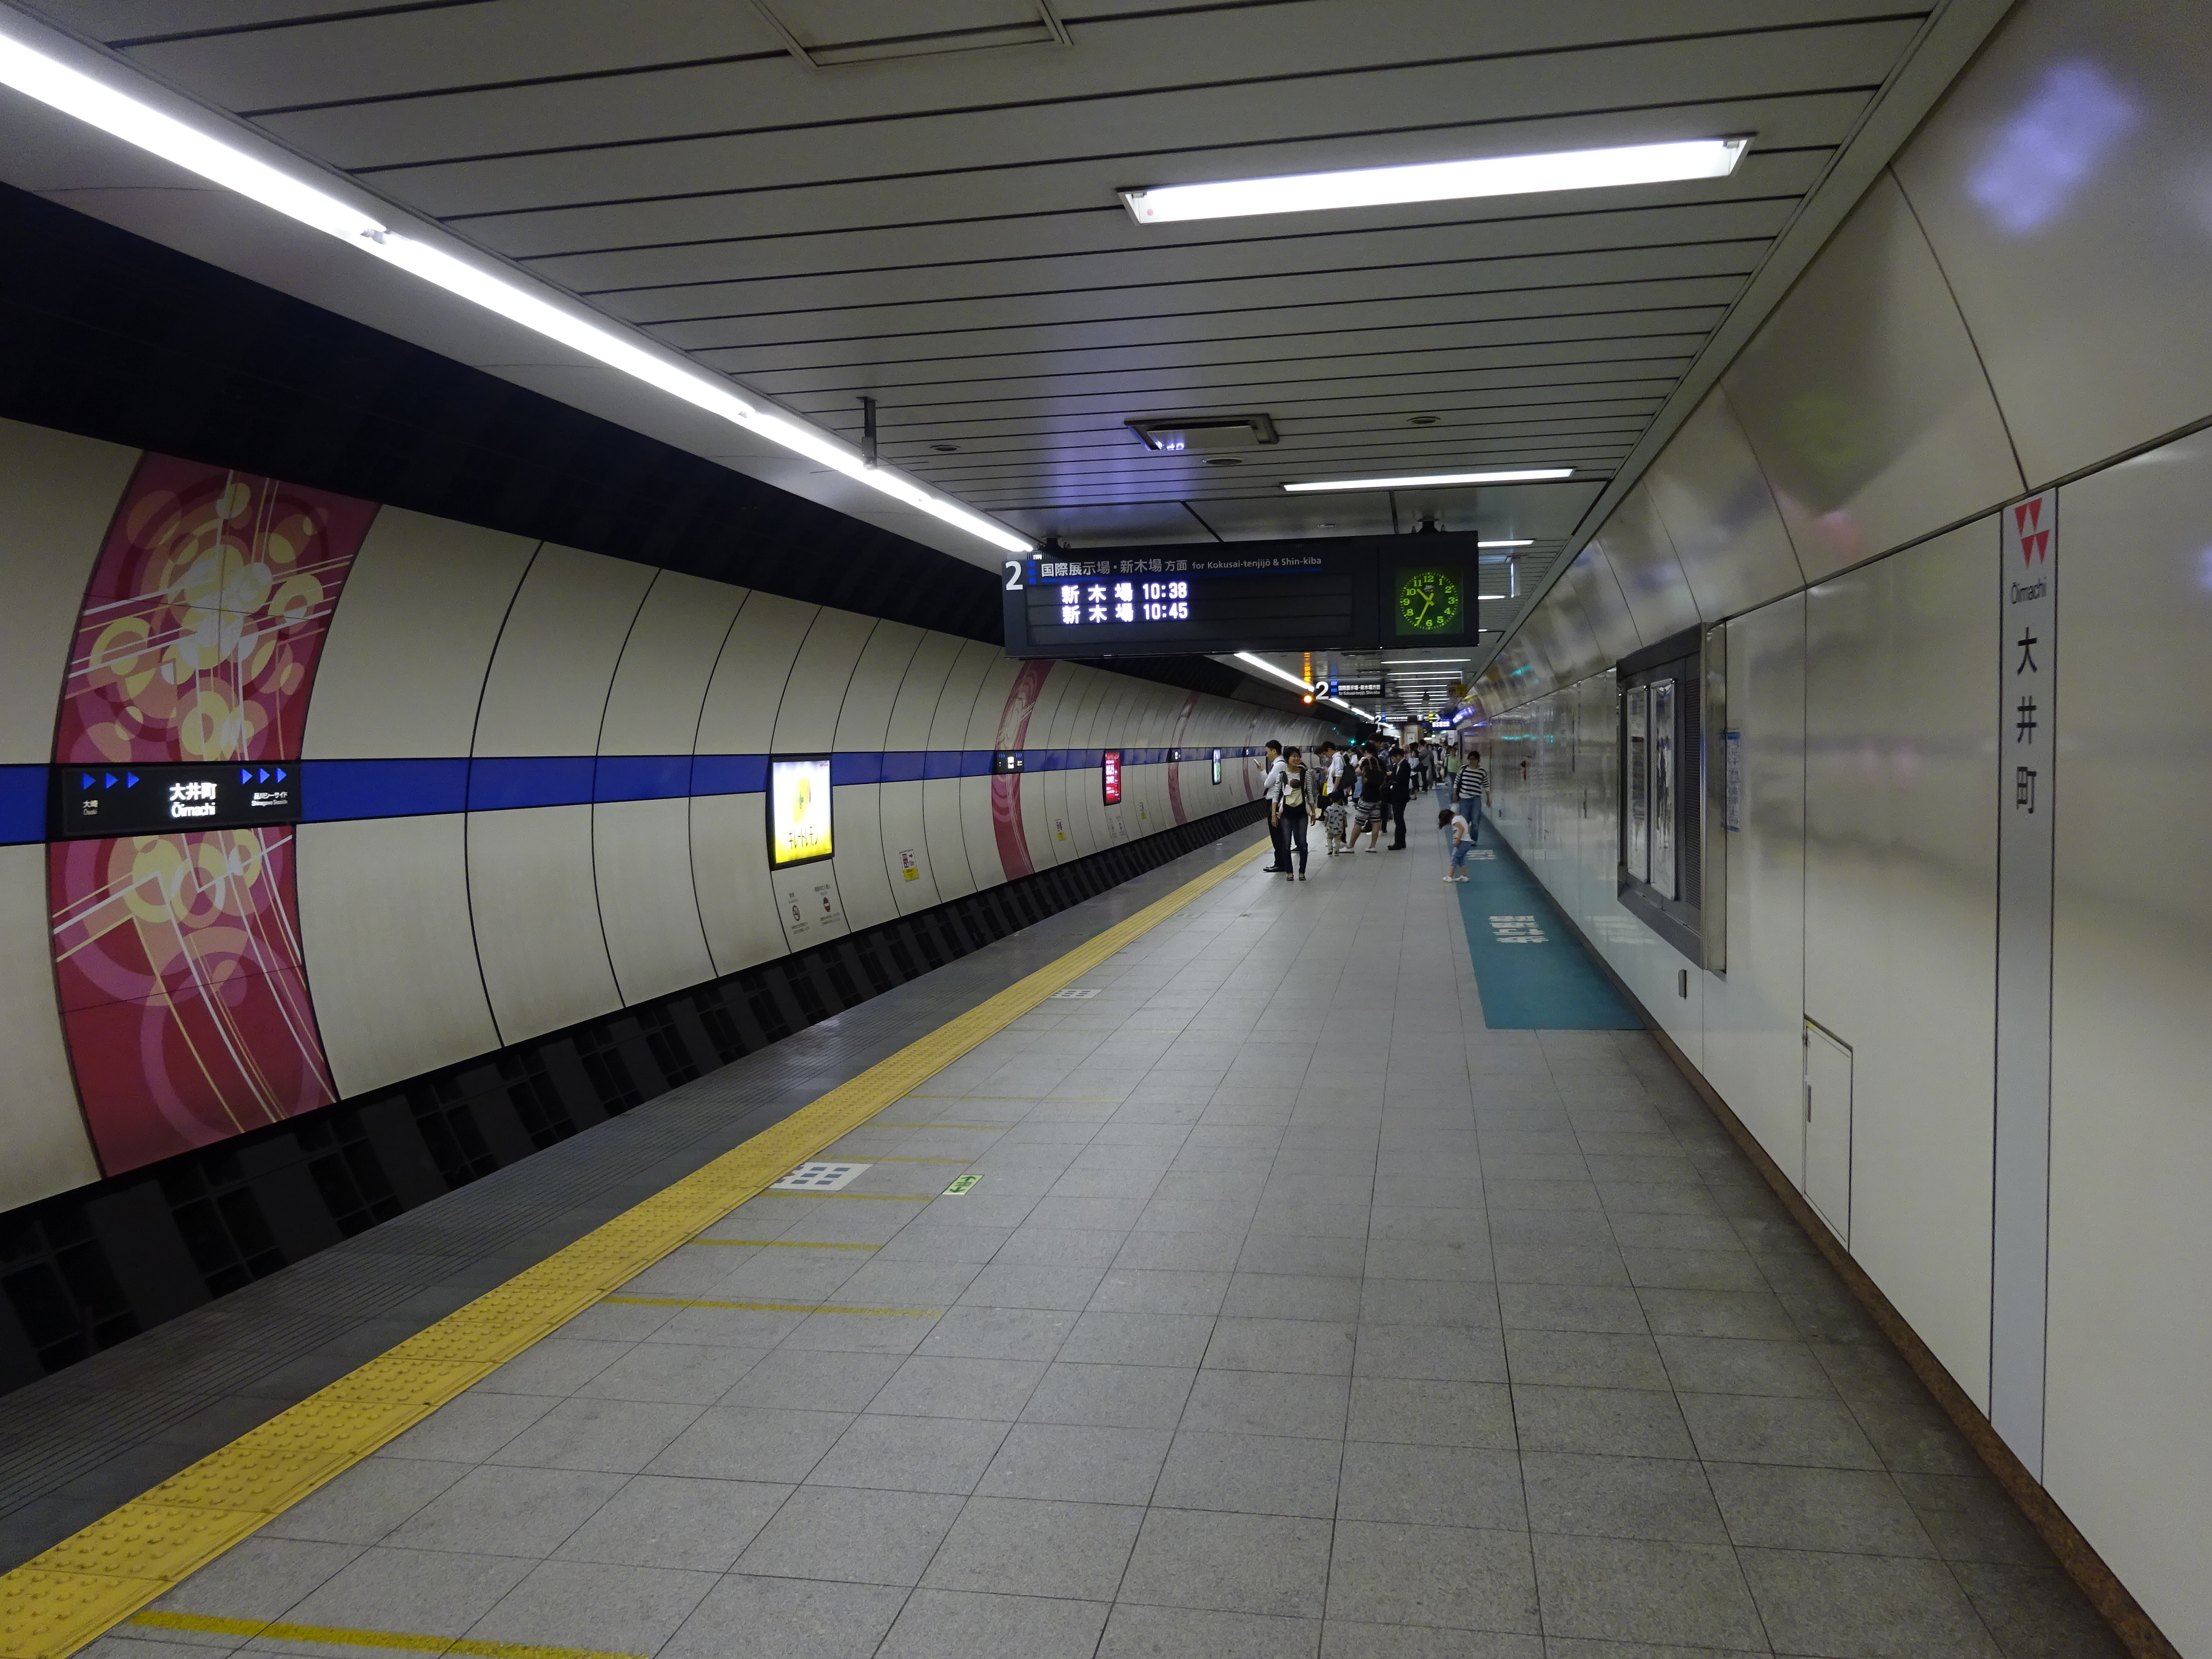 https://upload.wikimedia.org/wikipedia/commons/5/56/Ooimachi-Sta-Rinkai-Platform2.JPG